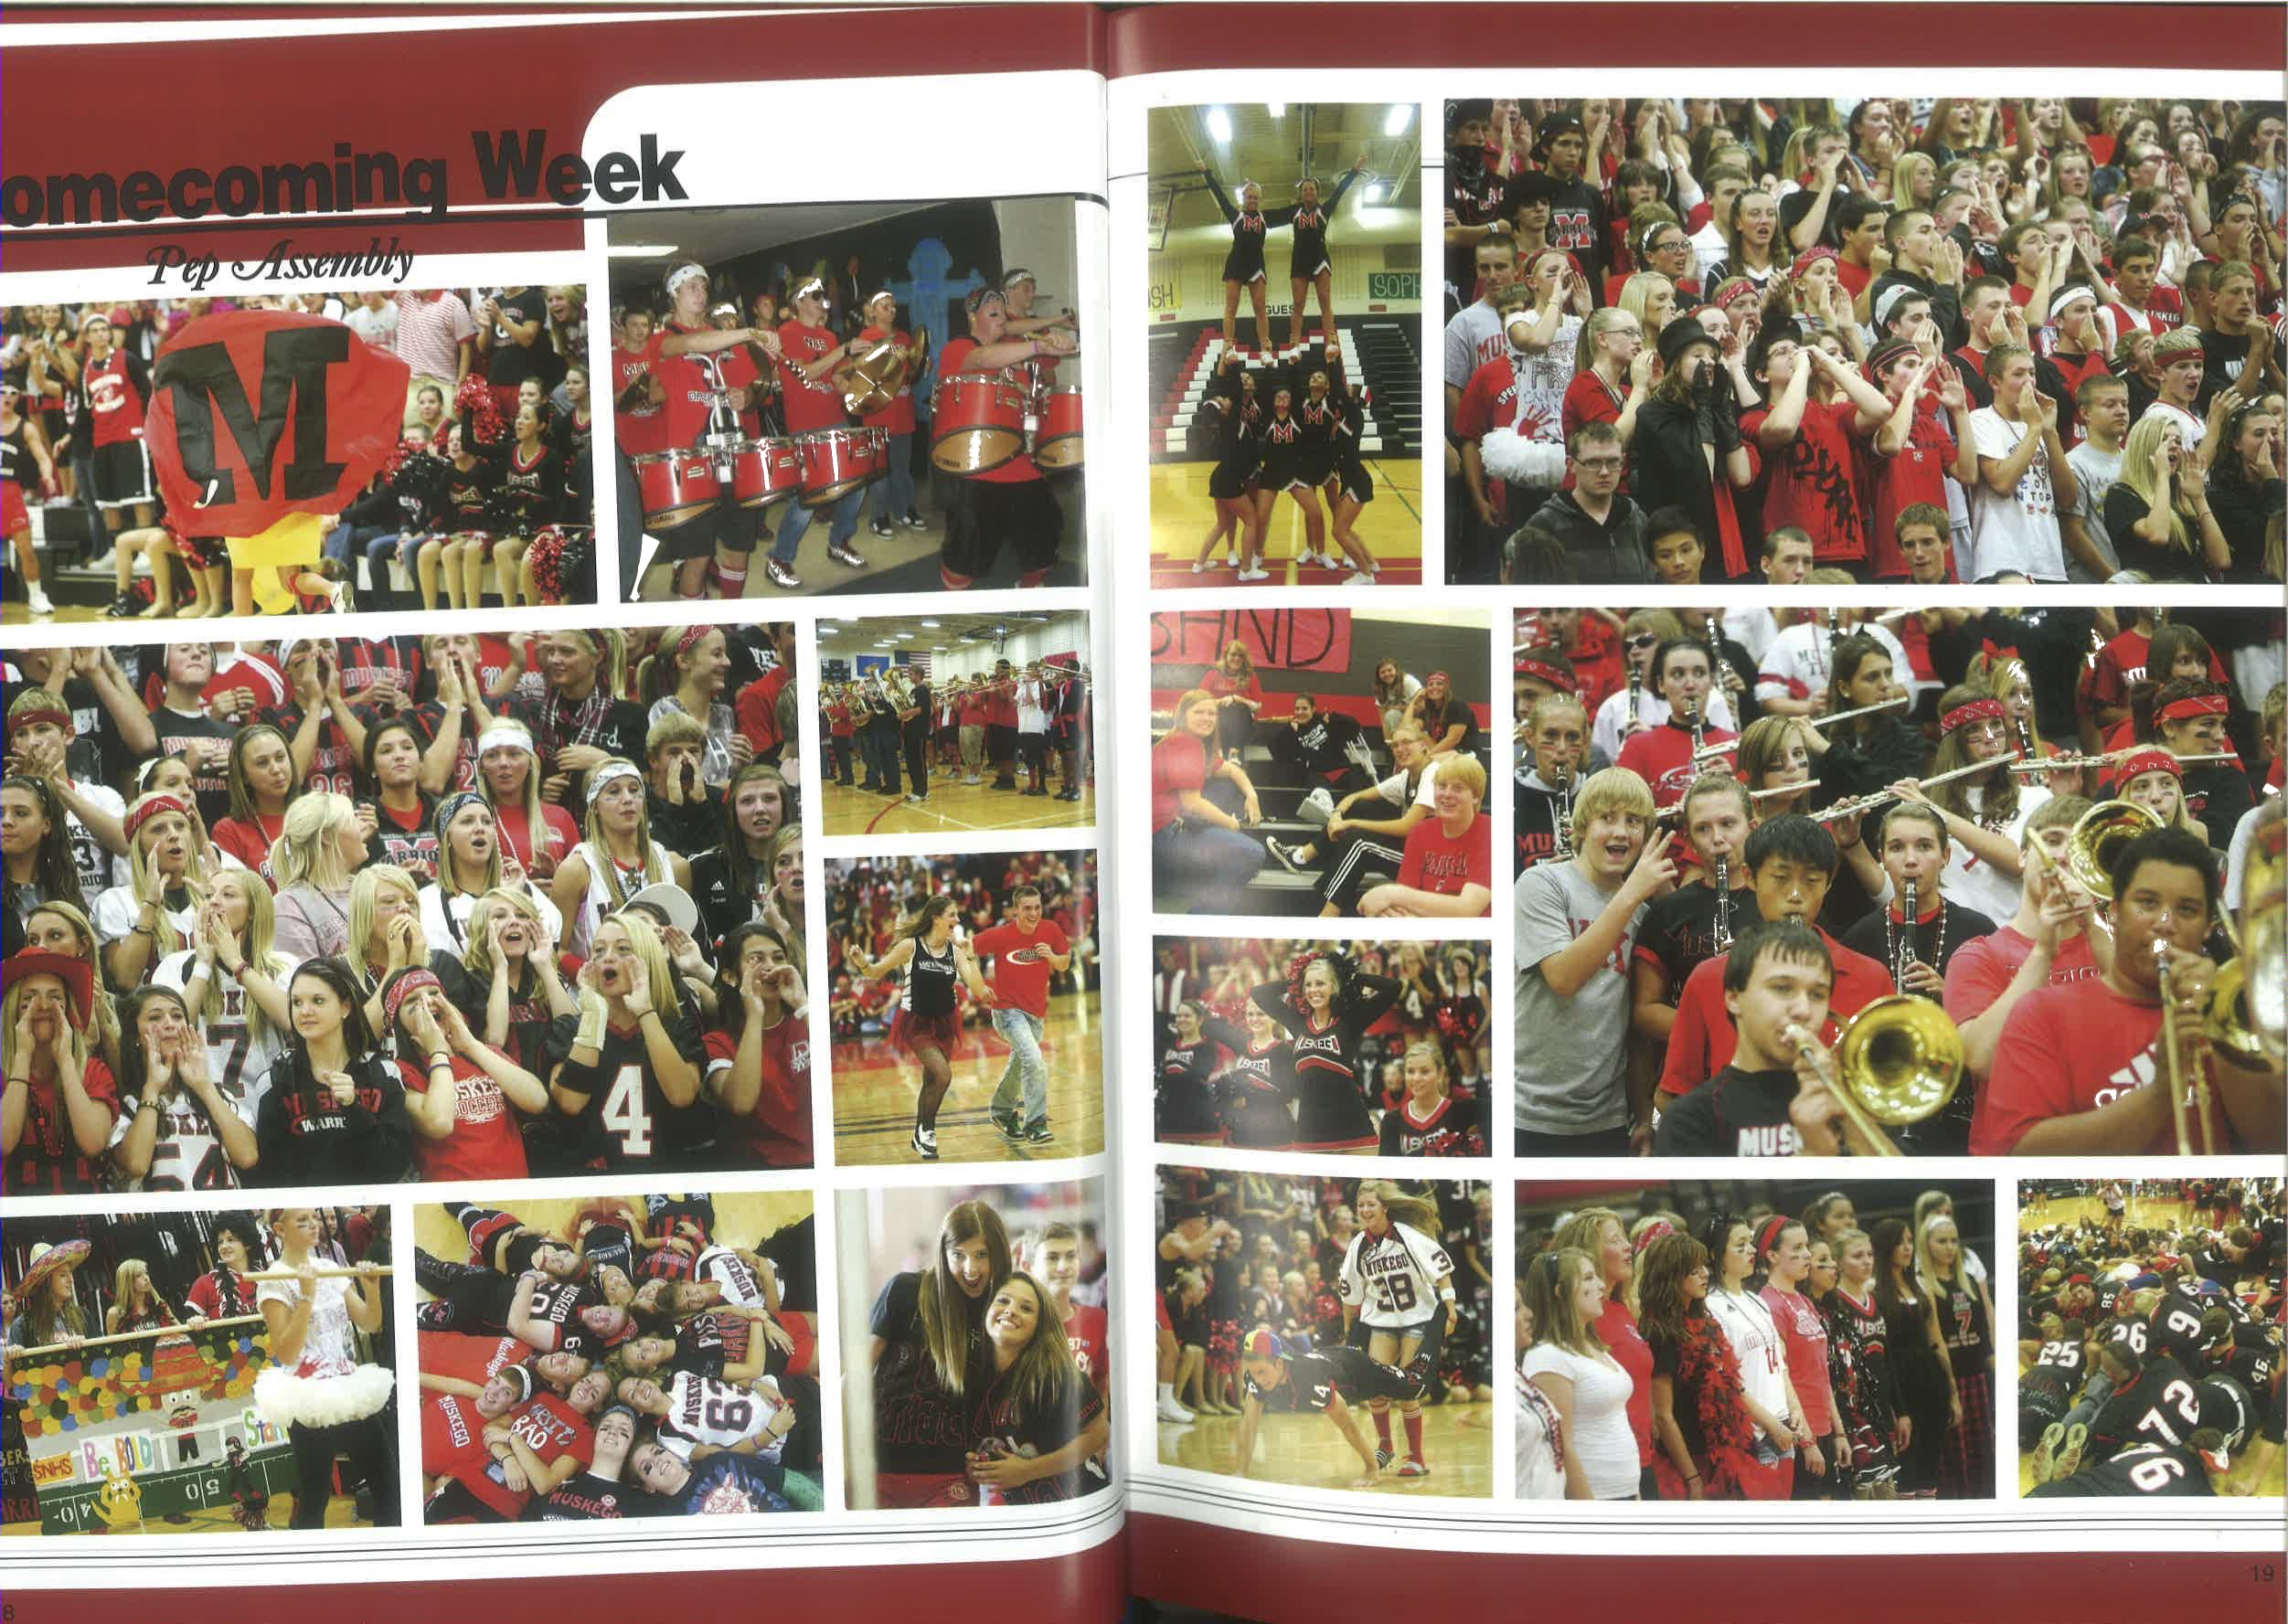 2012_Yearbook_10.jpg